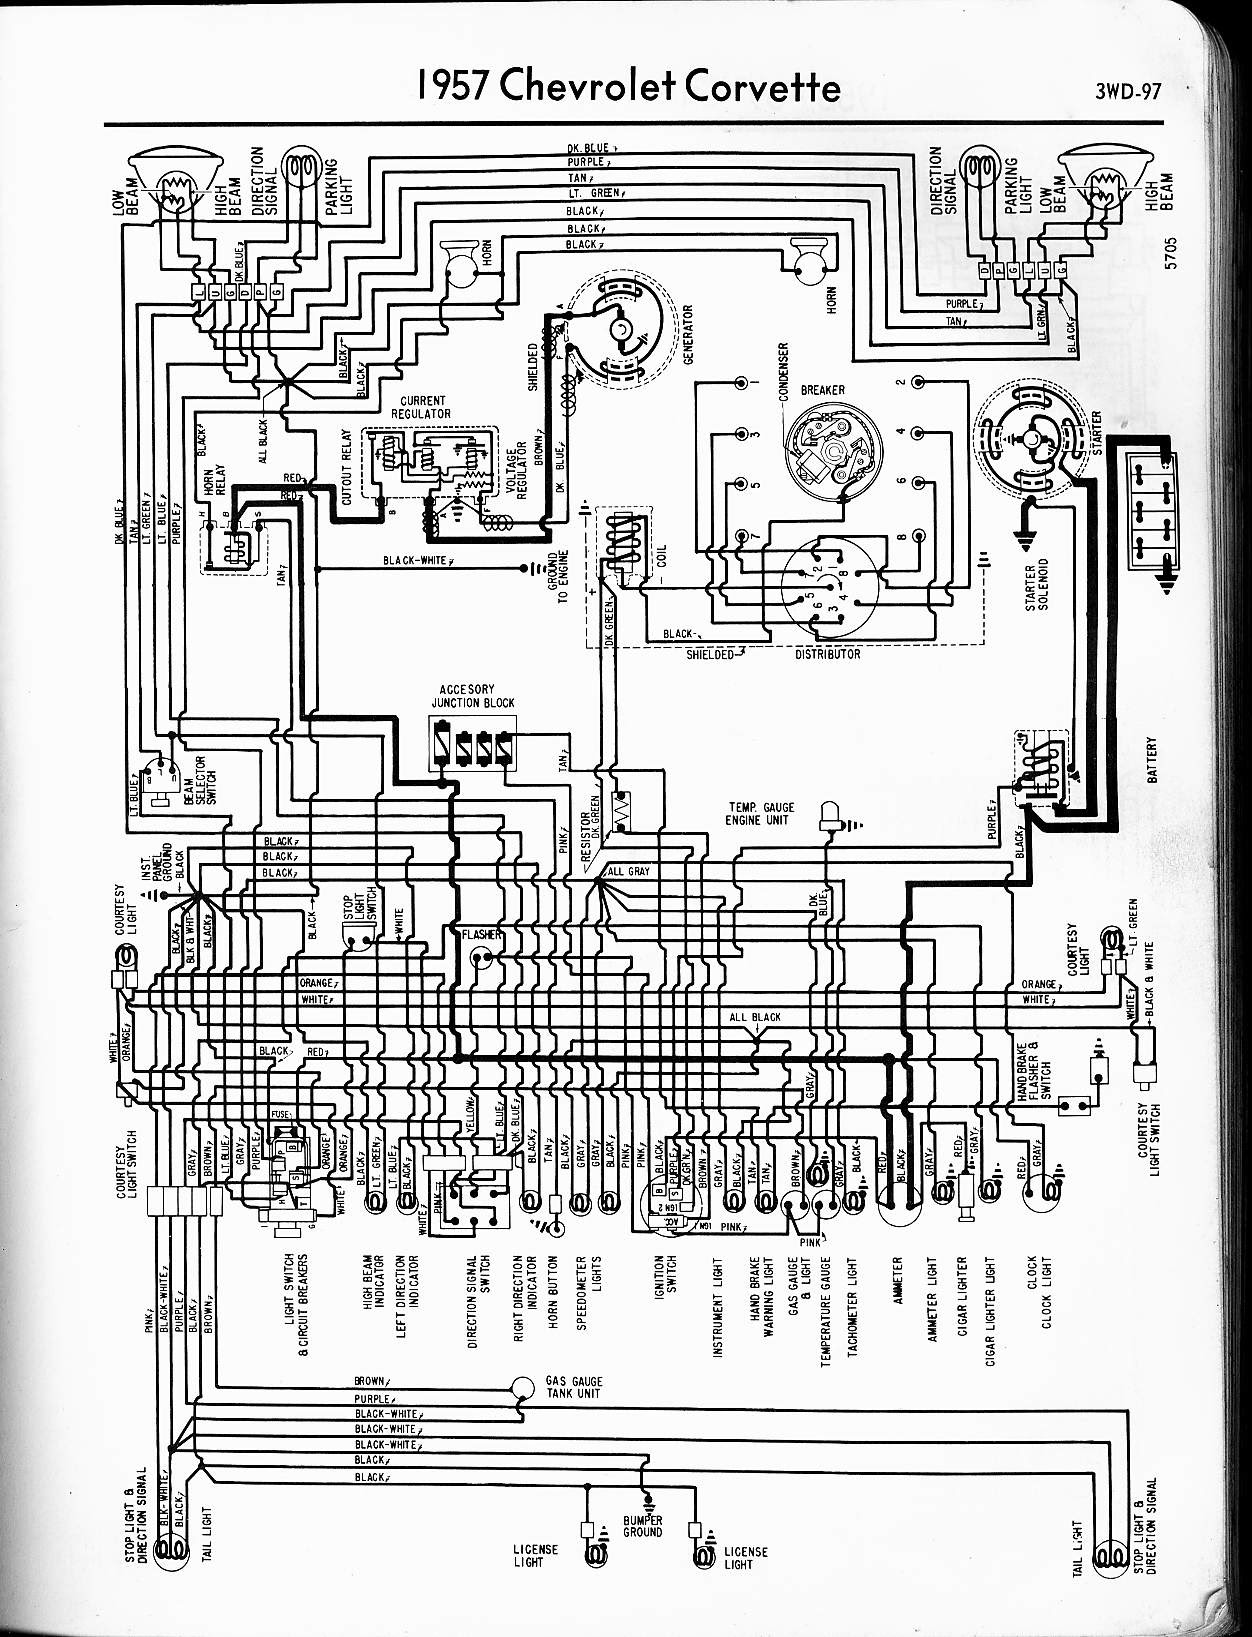 1956 Willys Wagon Wiring Diagram 2010 Dodge Journey Engine Diagram Delco Electronics 2010menanti Jeanjaures37 Fr